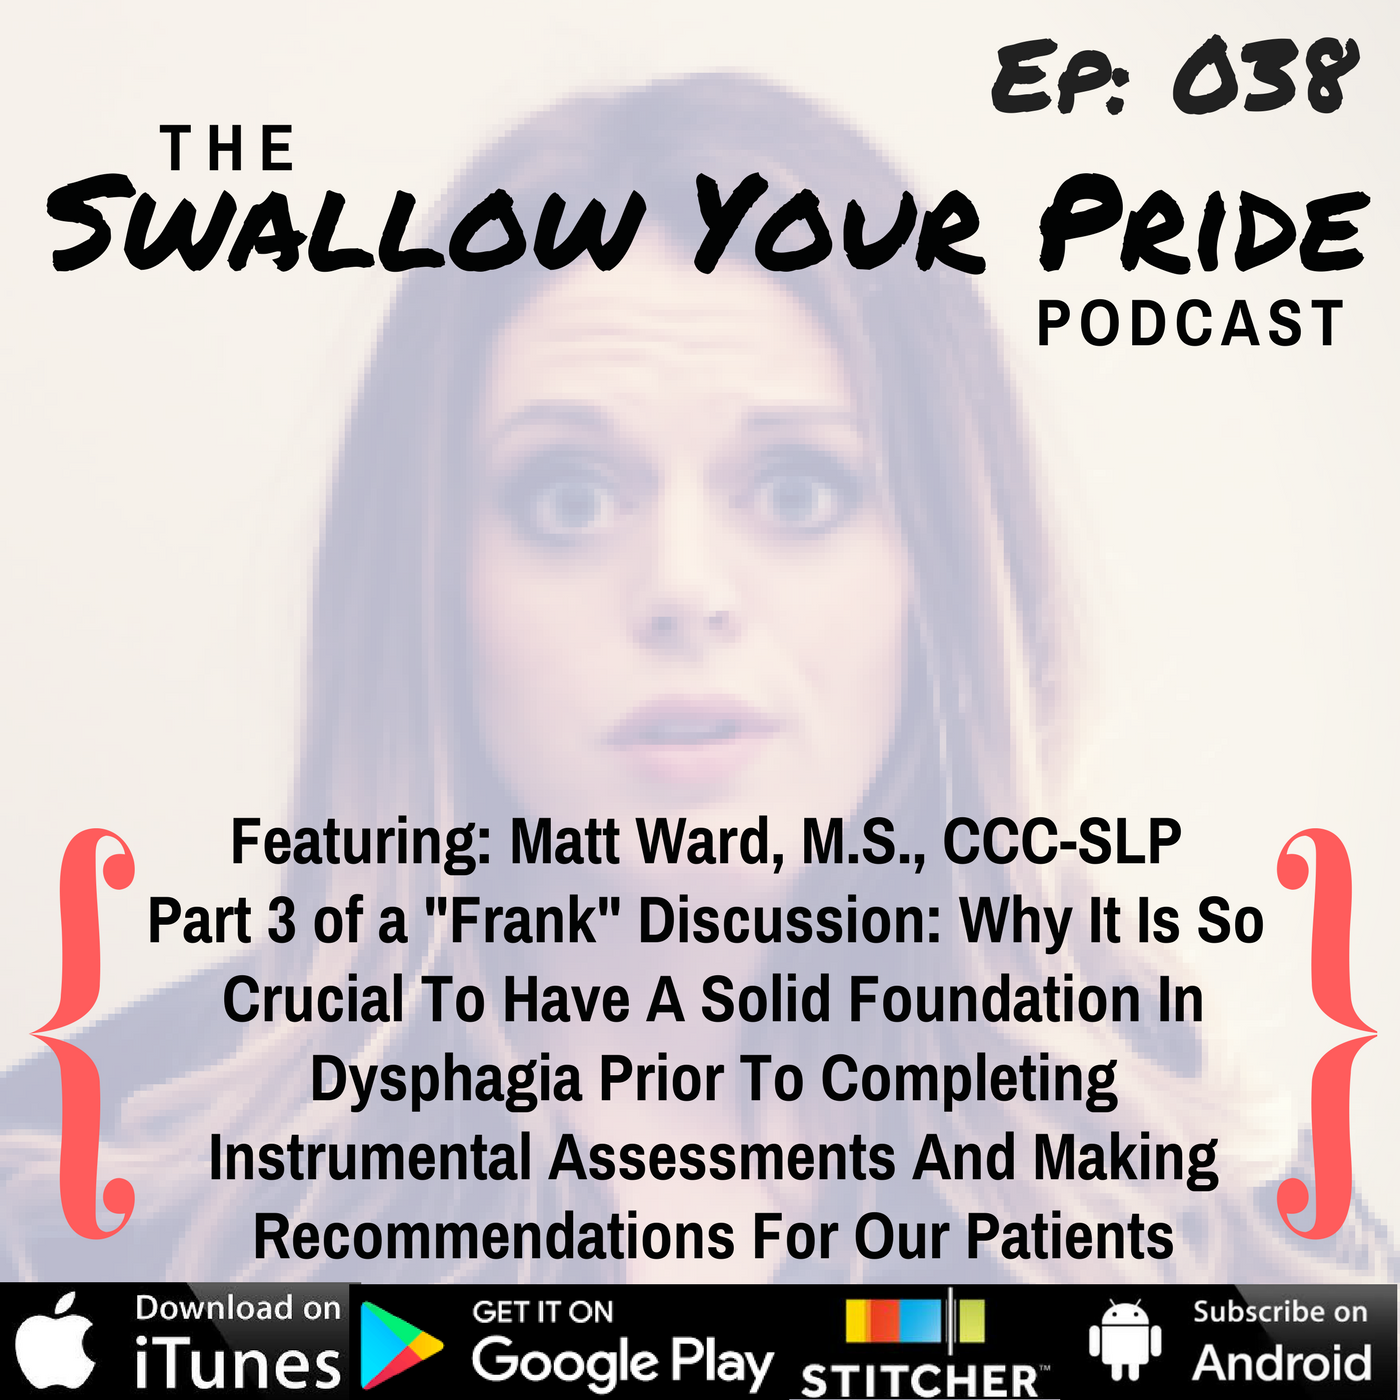 "038 – Matt Ward, M.S., CCC-SLP – Part 3 of a ""Frank"" Discussion: Why It Is So Crucial To Have A Solid Foundation In Dysphagia Prior To Completing Instrumental Assessments And Making Recommendations For Our Patients"